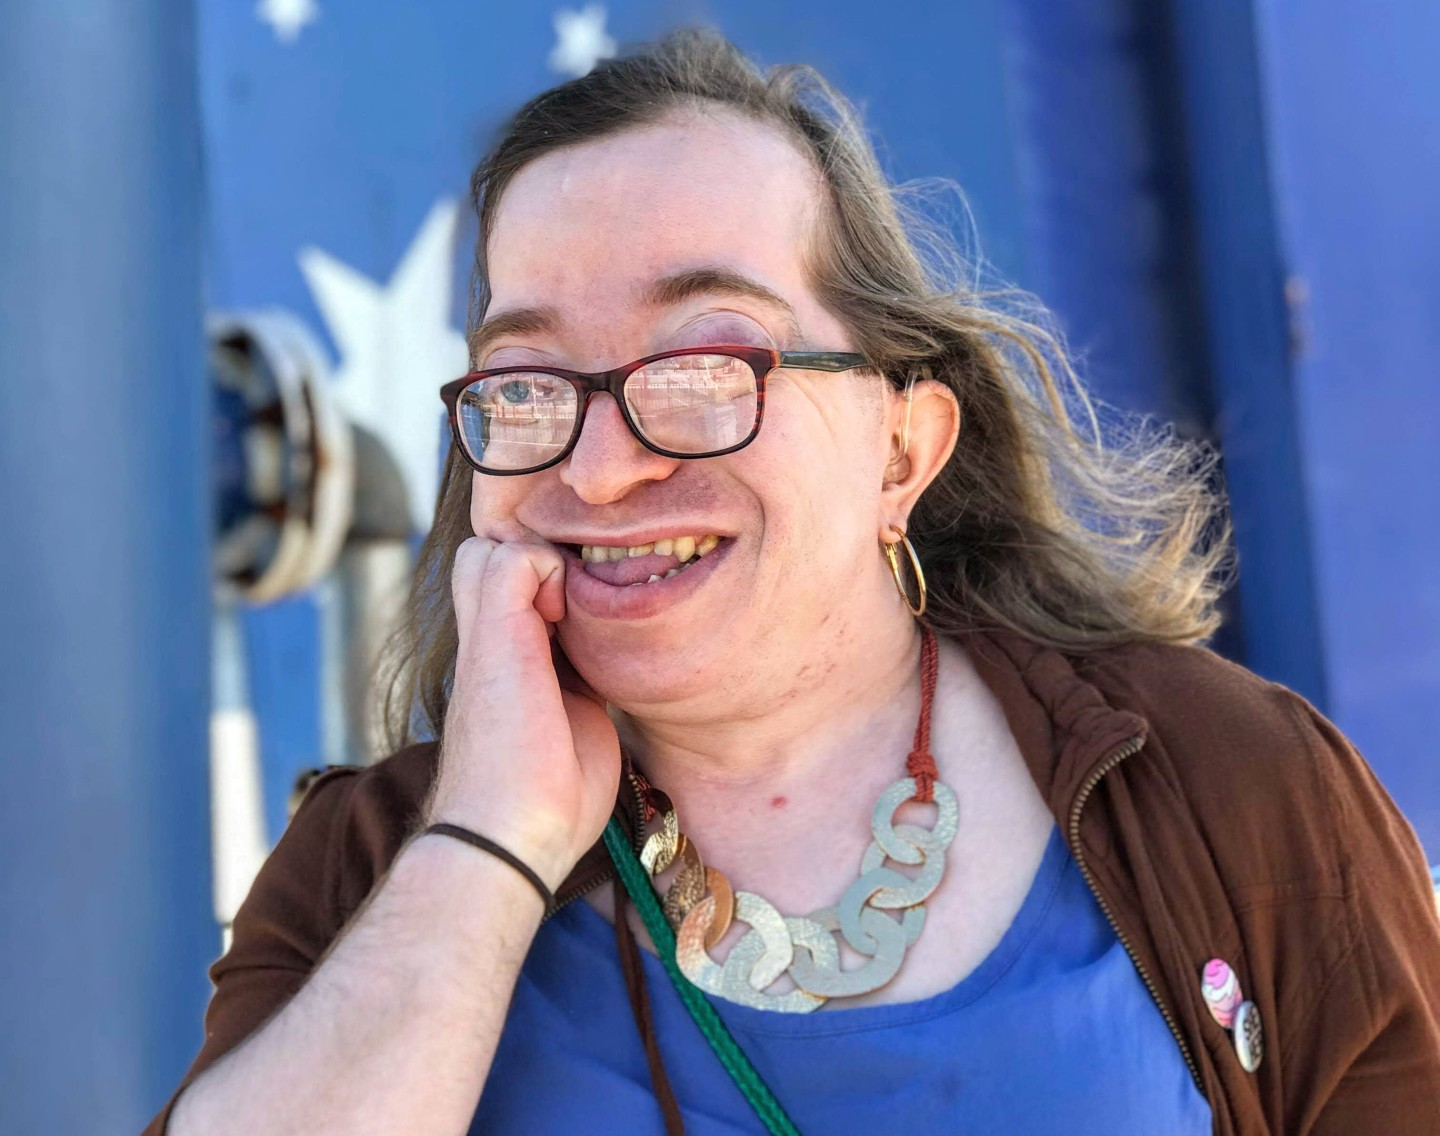 A woman with Crouzon syndrome wearing glasses and smiling at the camera